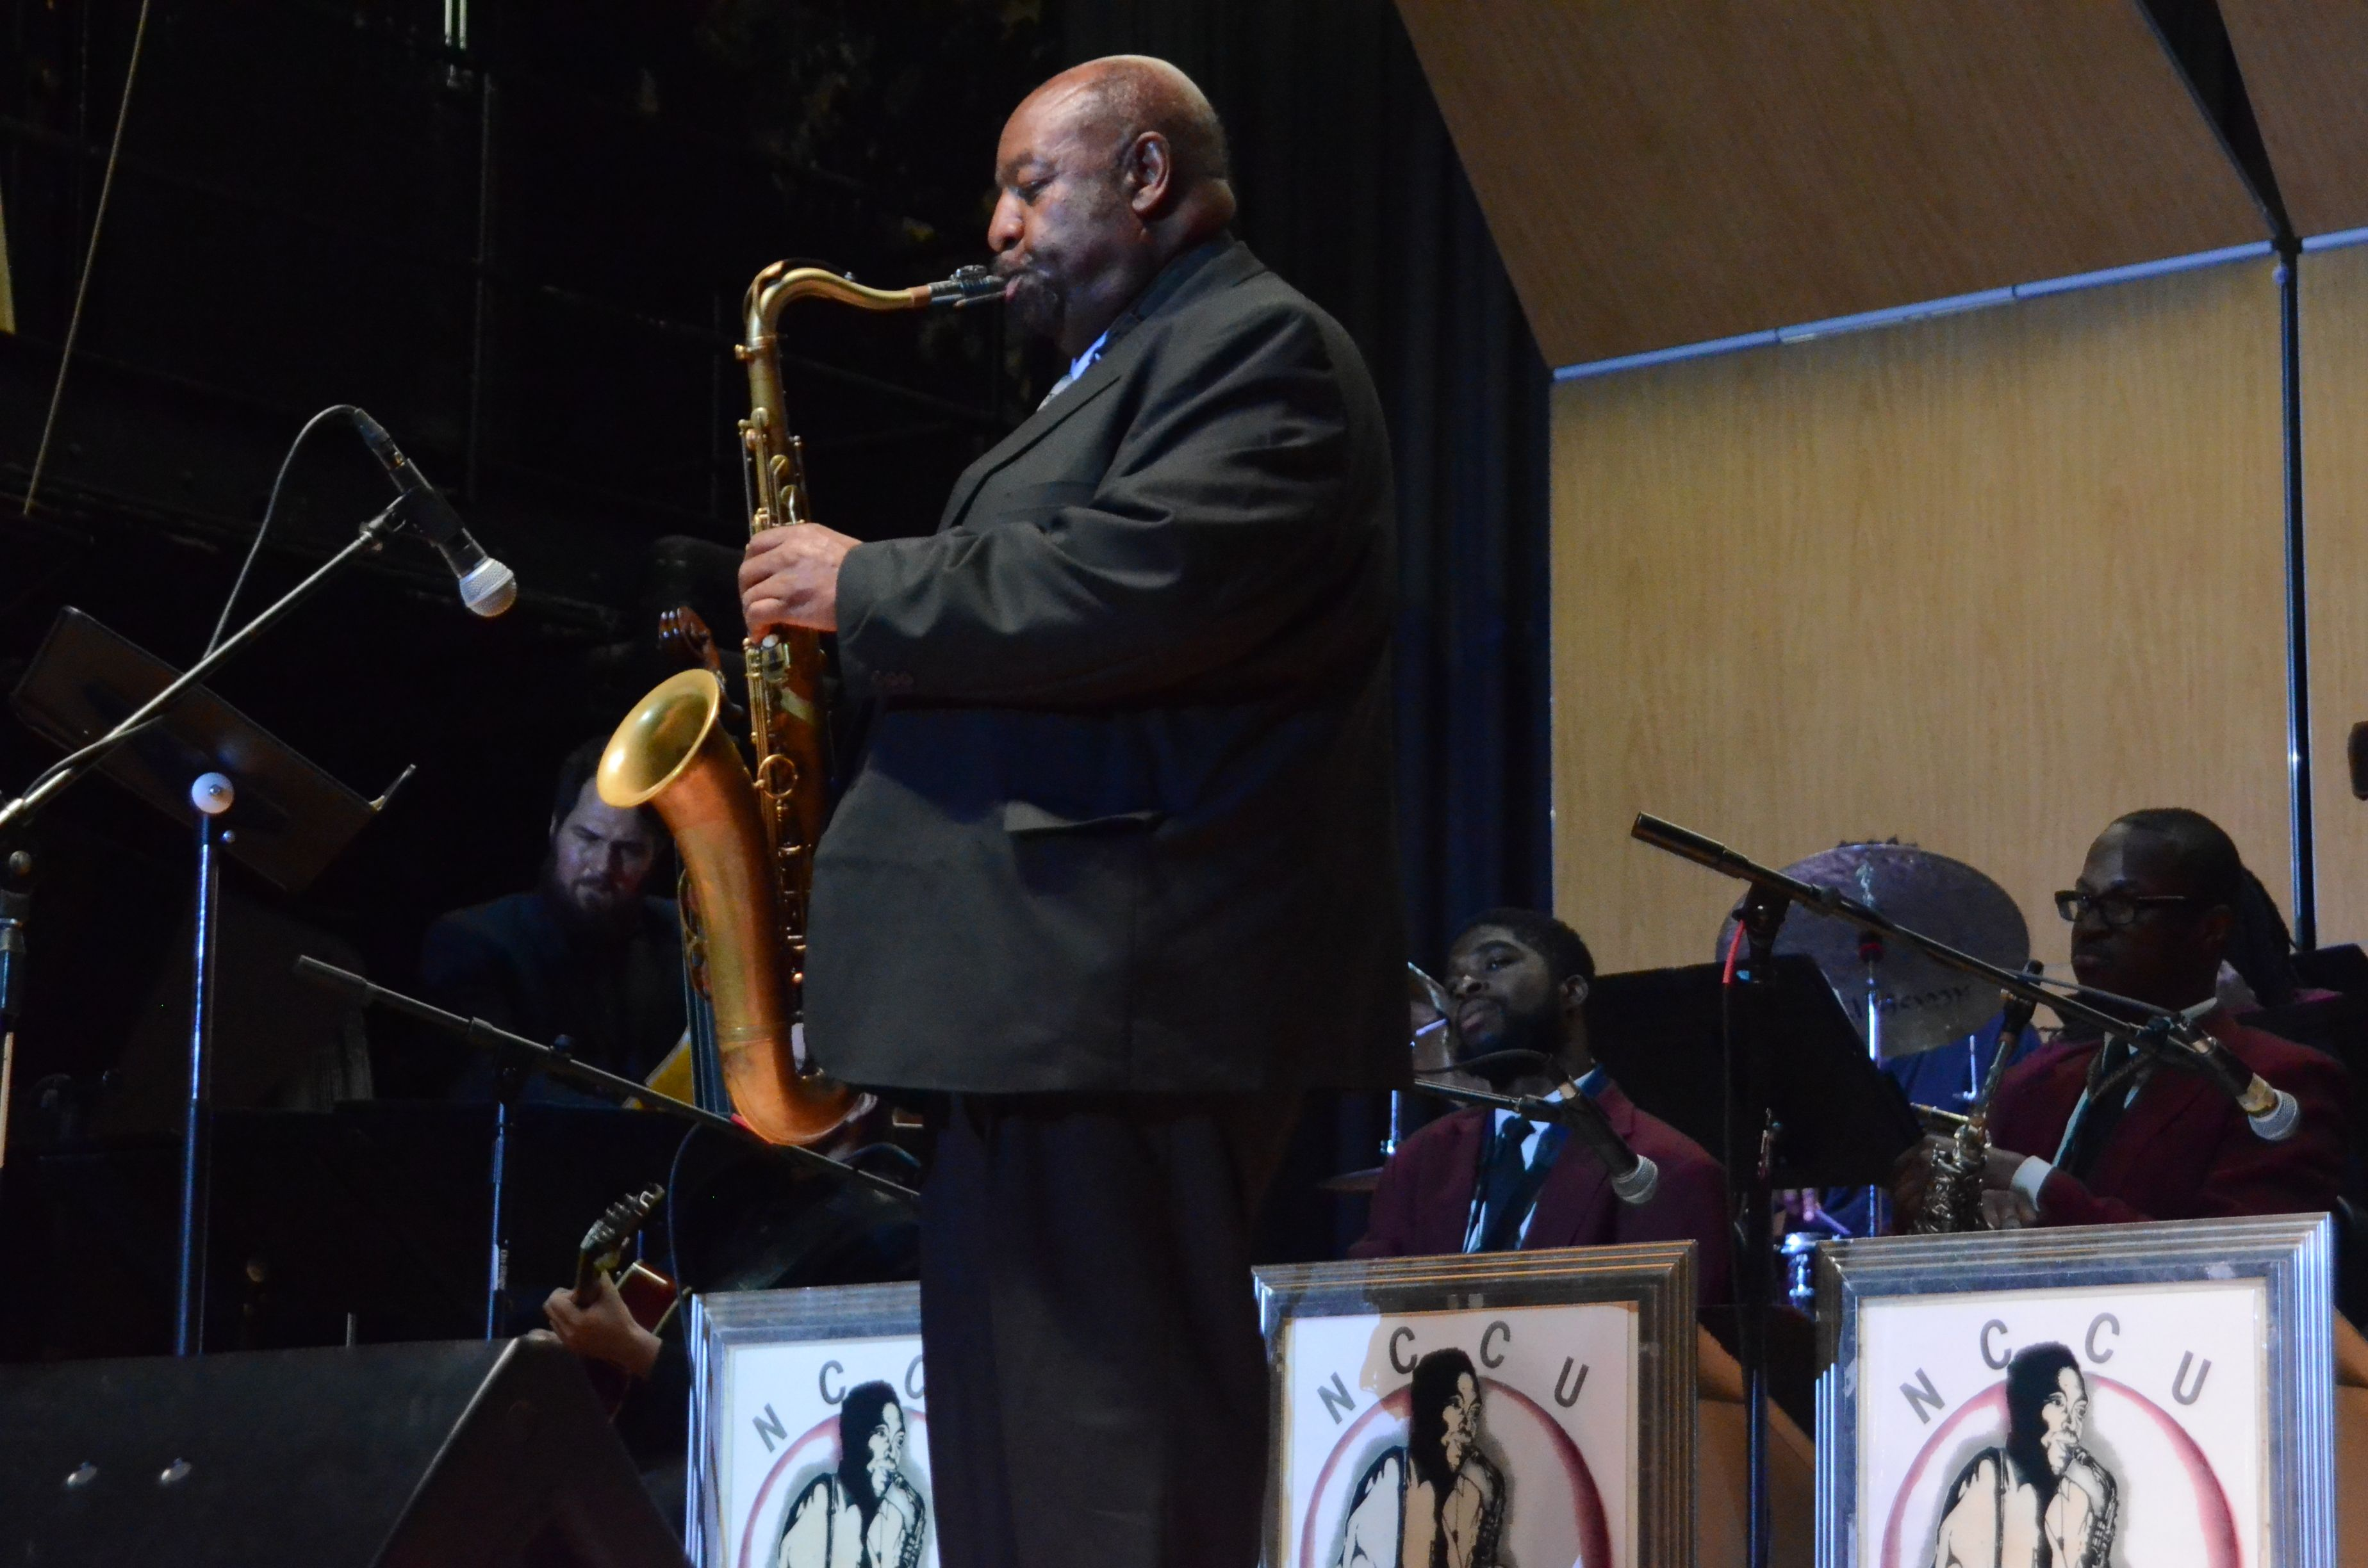 Ira Wiggins playing his sax on stage